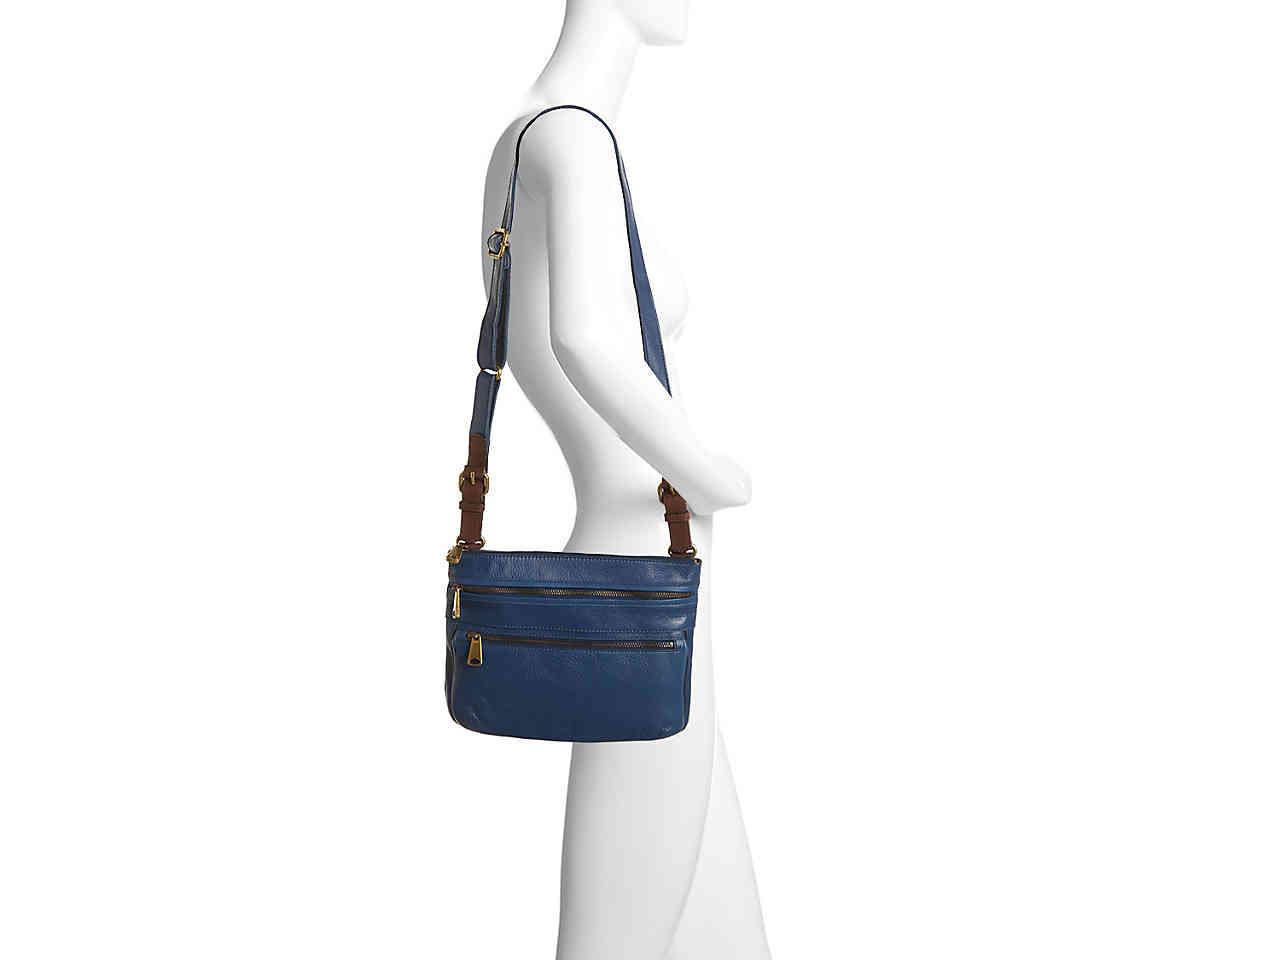 Lyst - Fossil Voyager Leather Crossbody Bag in Blue 1750f0efa4